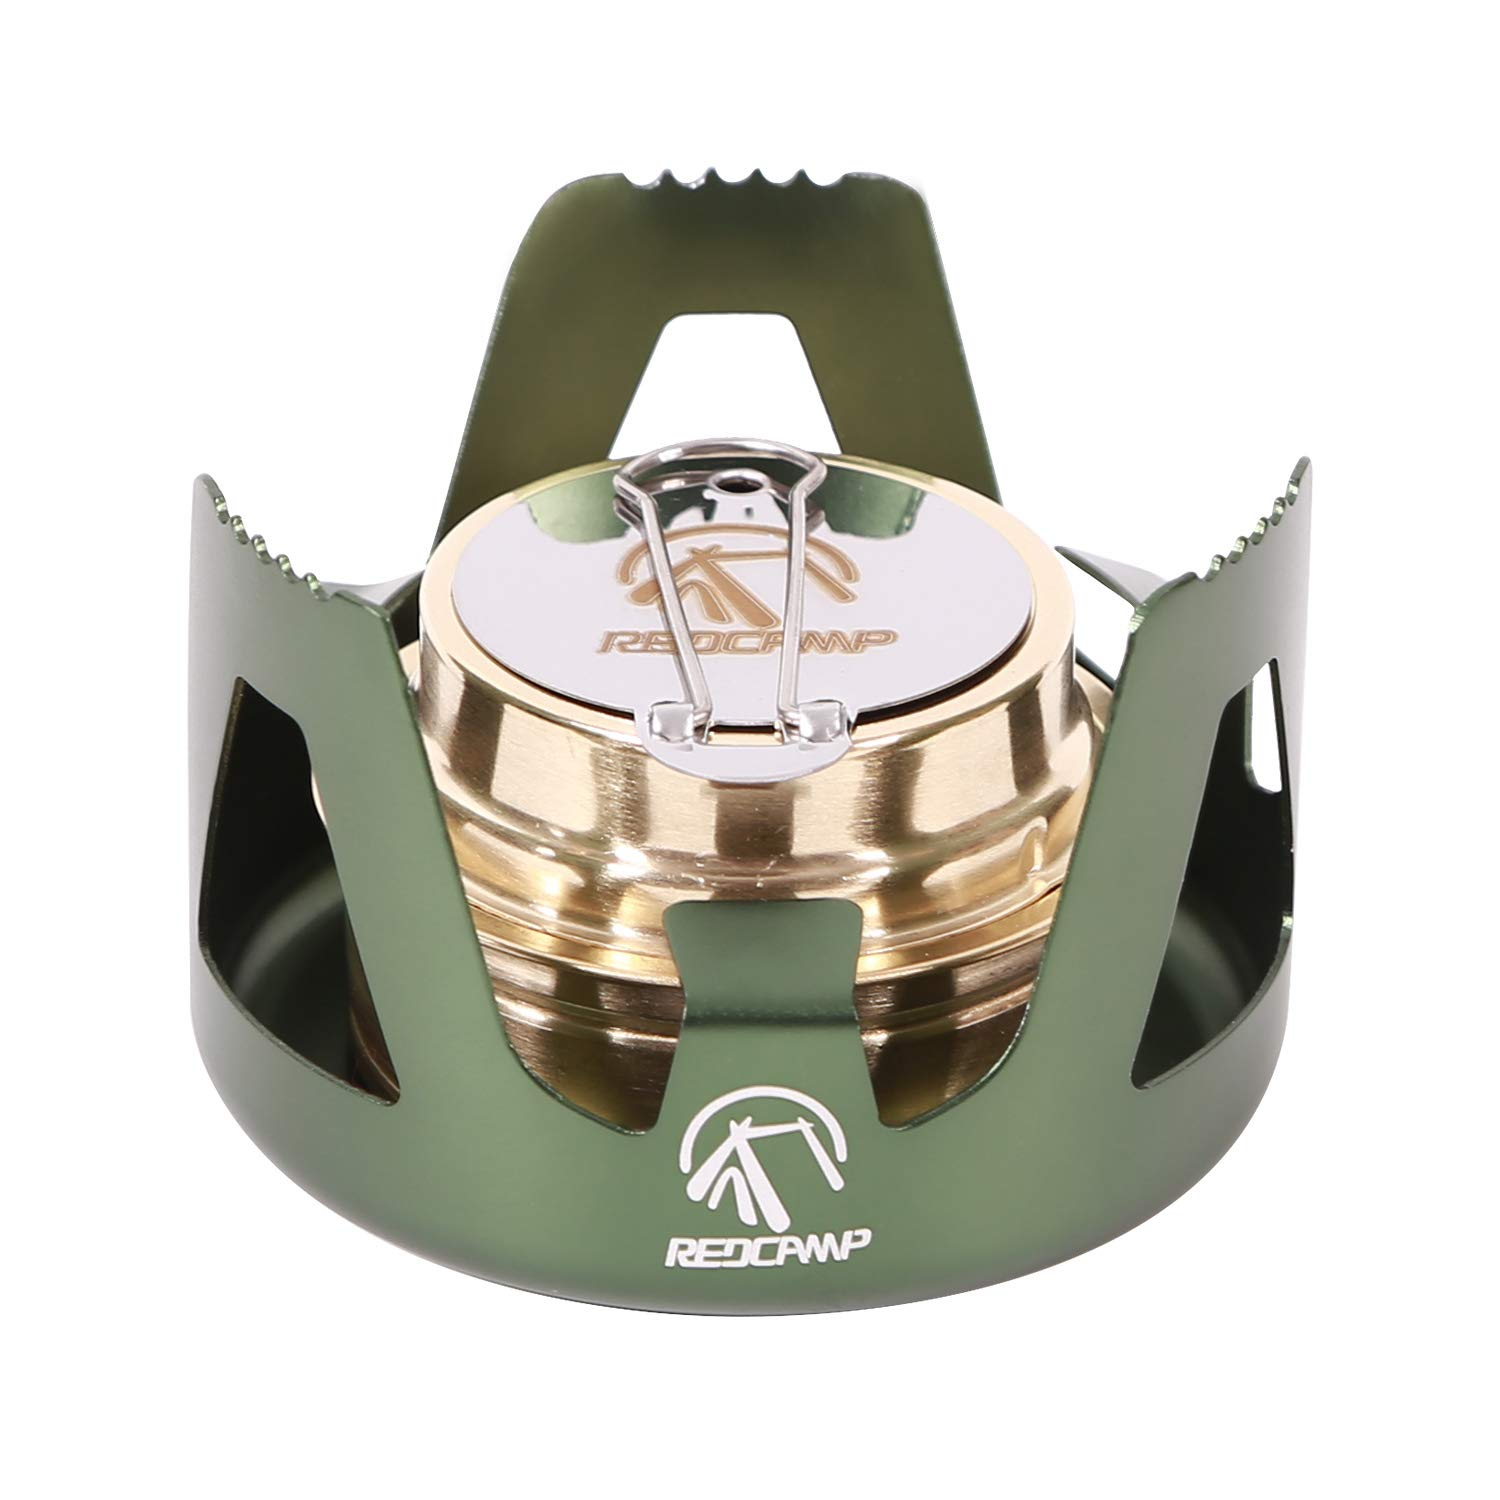 REDCAMP Mini Alcohol Stove for Backpacking, Lightweight Brass Spirit Burner with Aluminium Stand for Camping Hiking, Green by REDCAMP